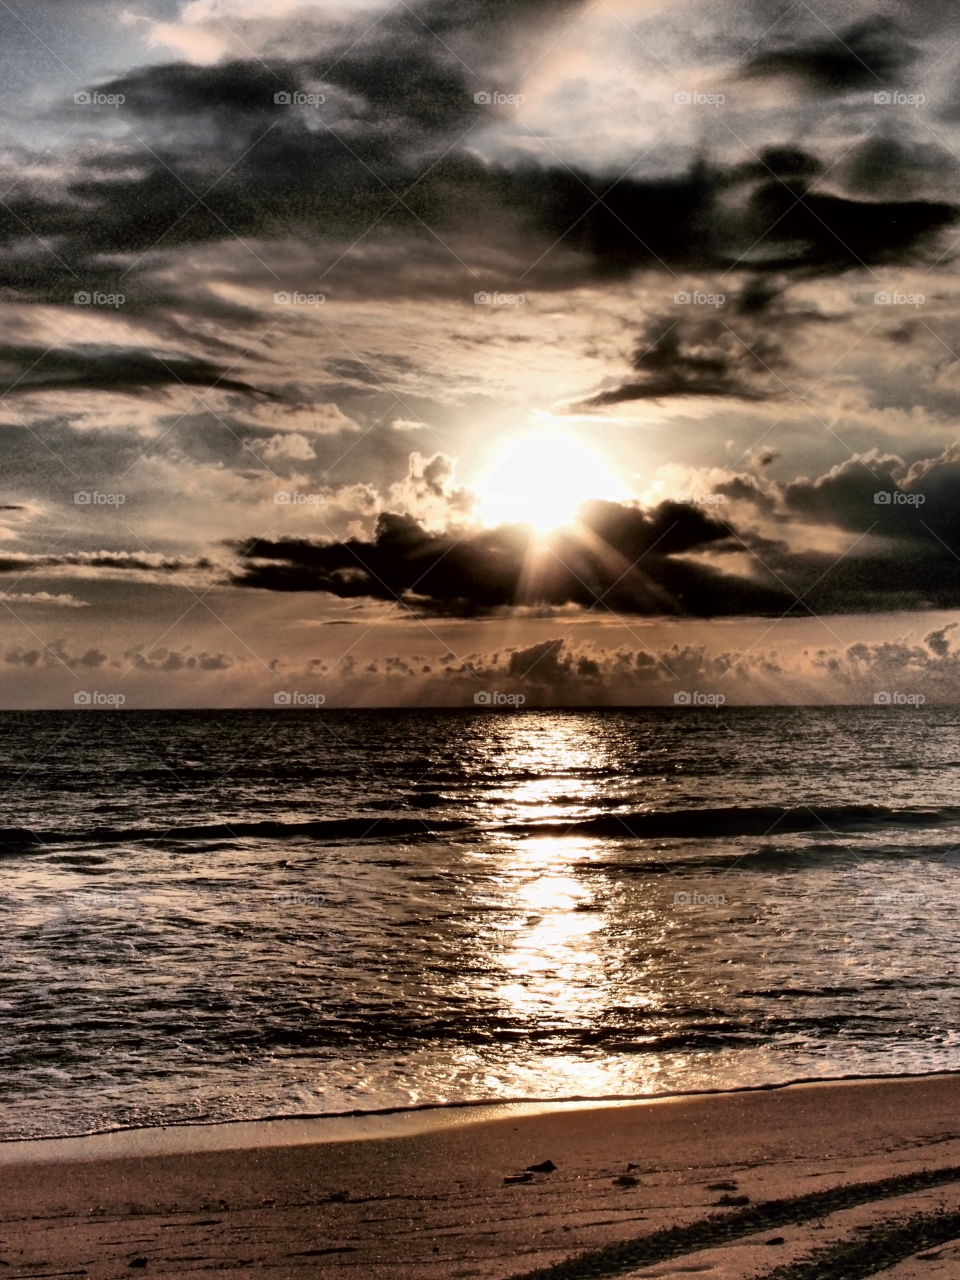 Sunrise In Mexico, Sun Reflecting On The Ocean, Mexican Sunrise, Light Reflections, Sun Rises Through The Clouds